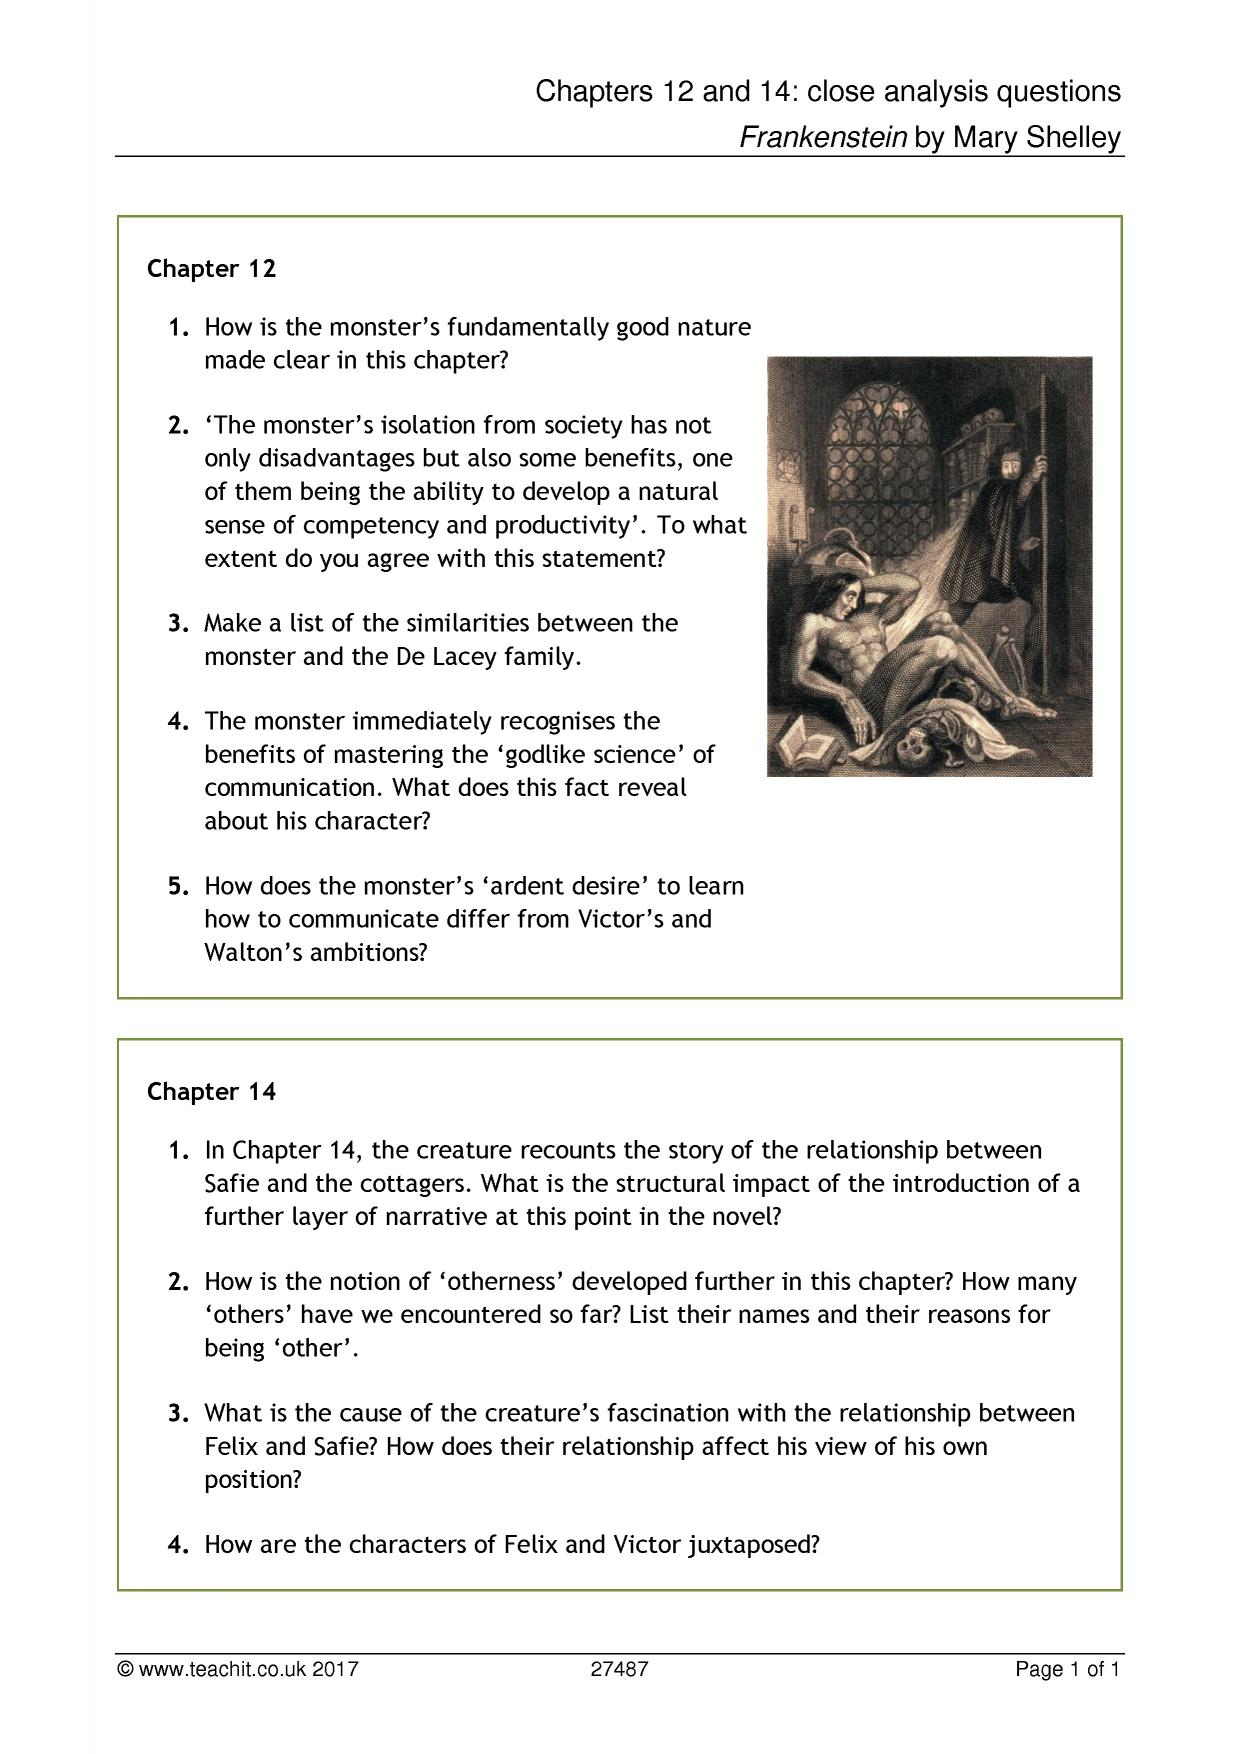 frankenstein close reading Close reading essay of frankenstein frankenstein the deaths of his loved ones leave him with a sense of loss, guilt and despair because he knows he is indirectly responsible for their deaths.